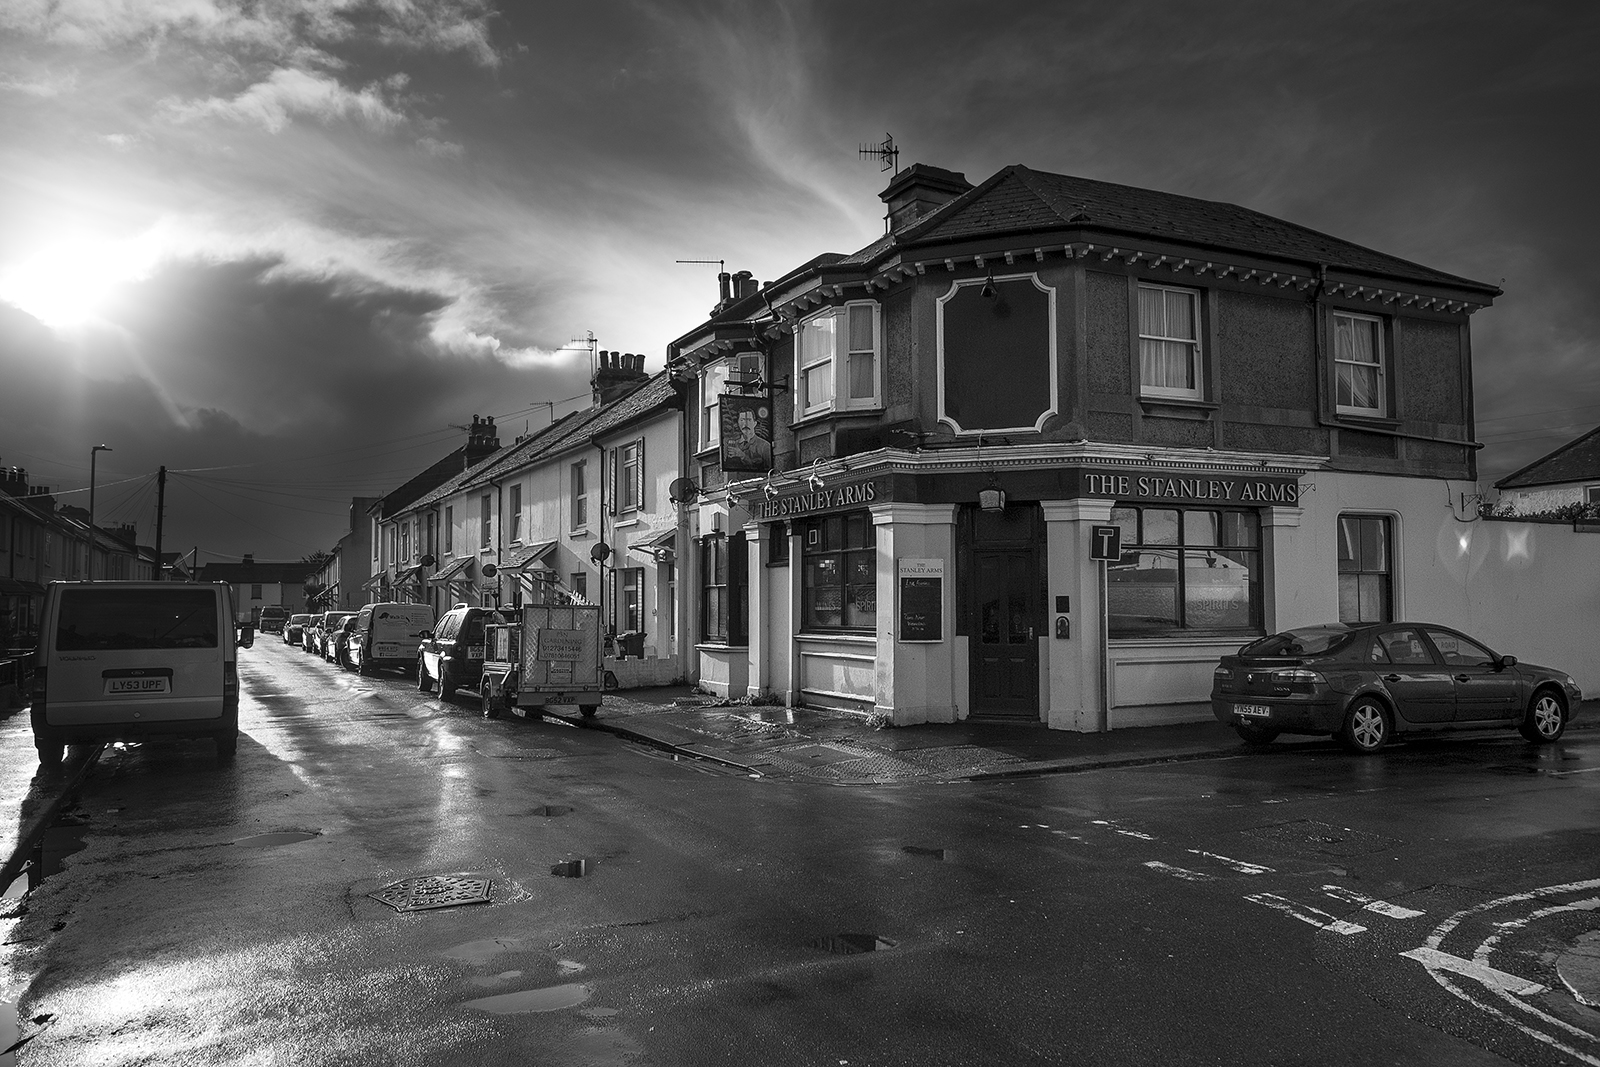 The Stanley Arms pub on Wolseley Road, Portslade, West Sussex UK, dramatic clouds and sunlight after rain, black and white urban landscape documentary photograph ©P. Maton 2018 eyeteeth.net